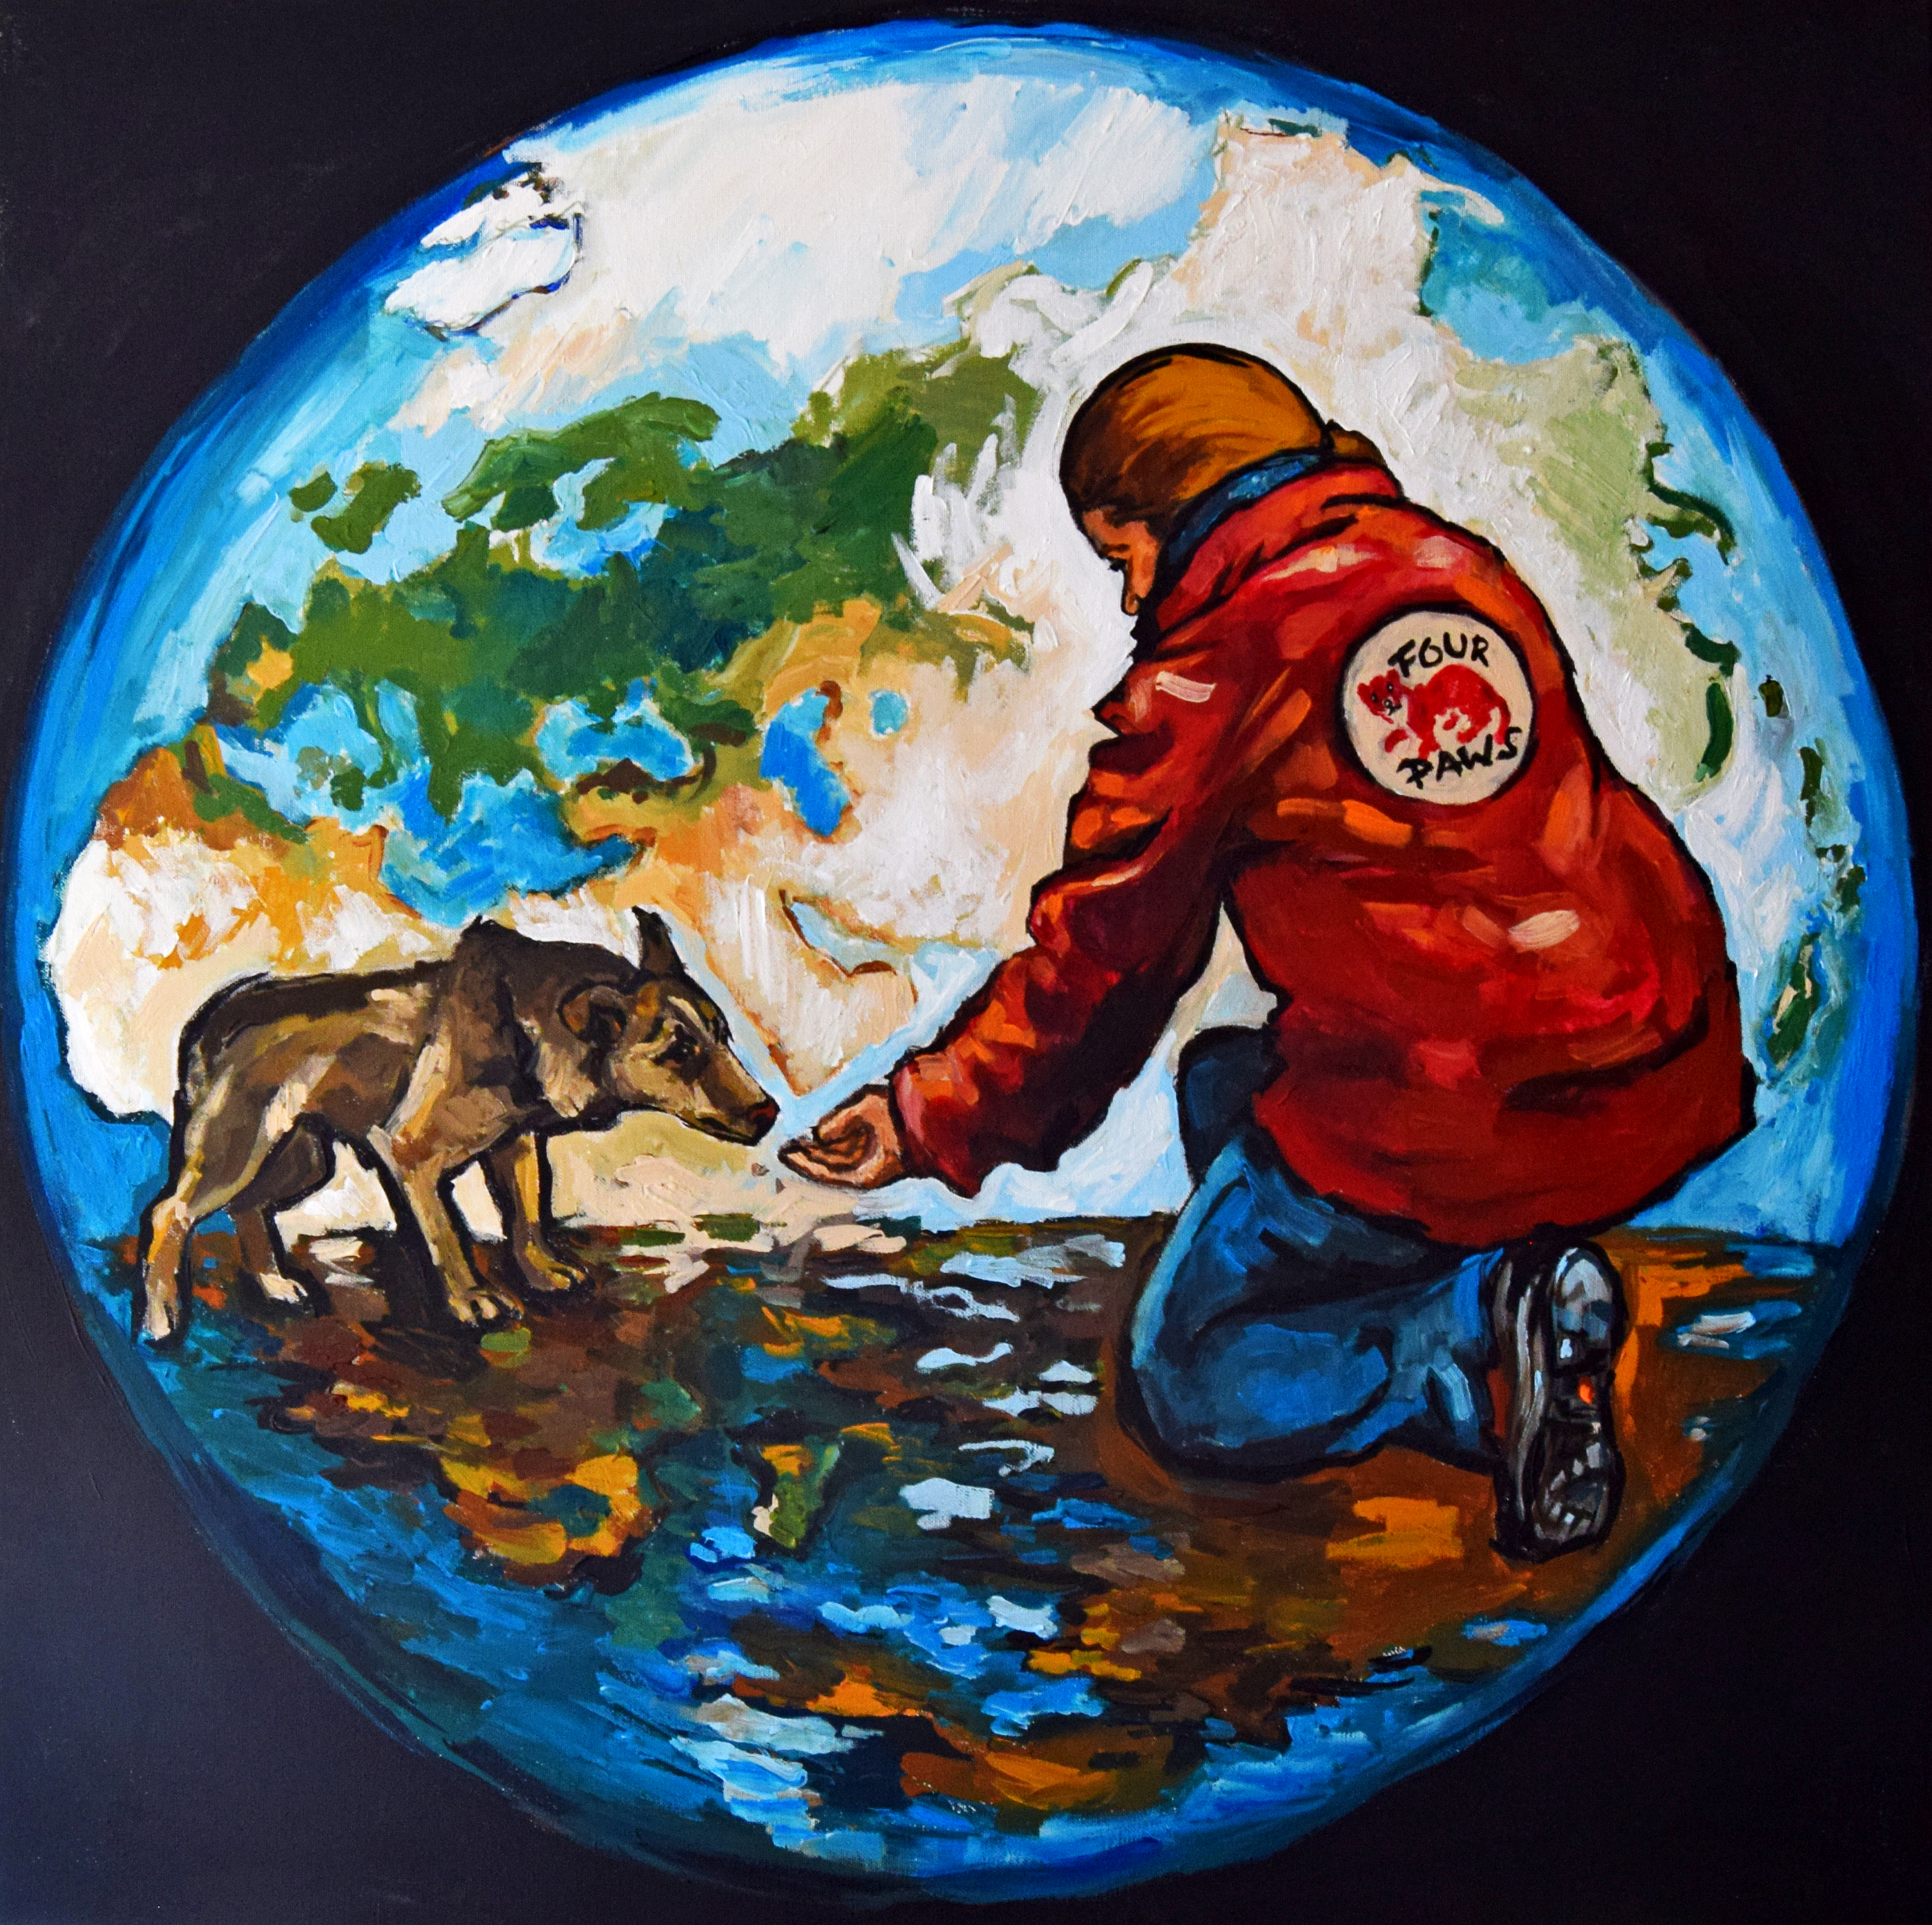 7. Reducing stray animal suffering, created by Magdalena P